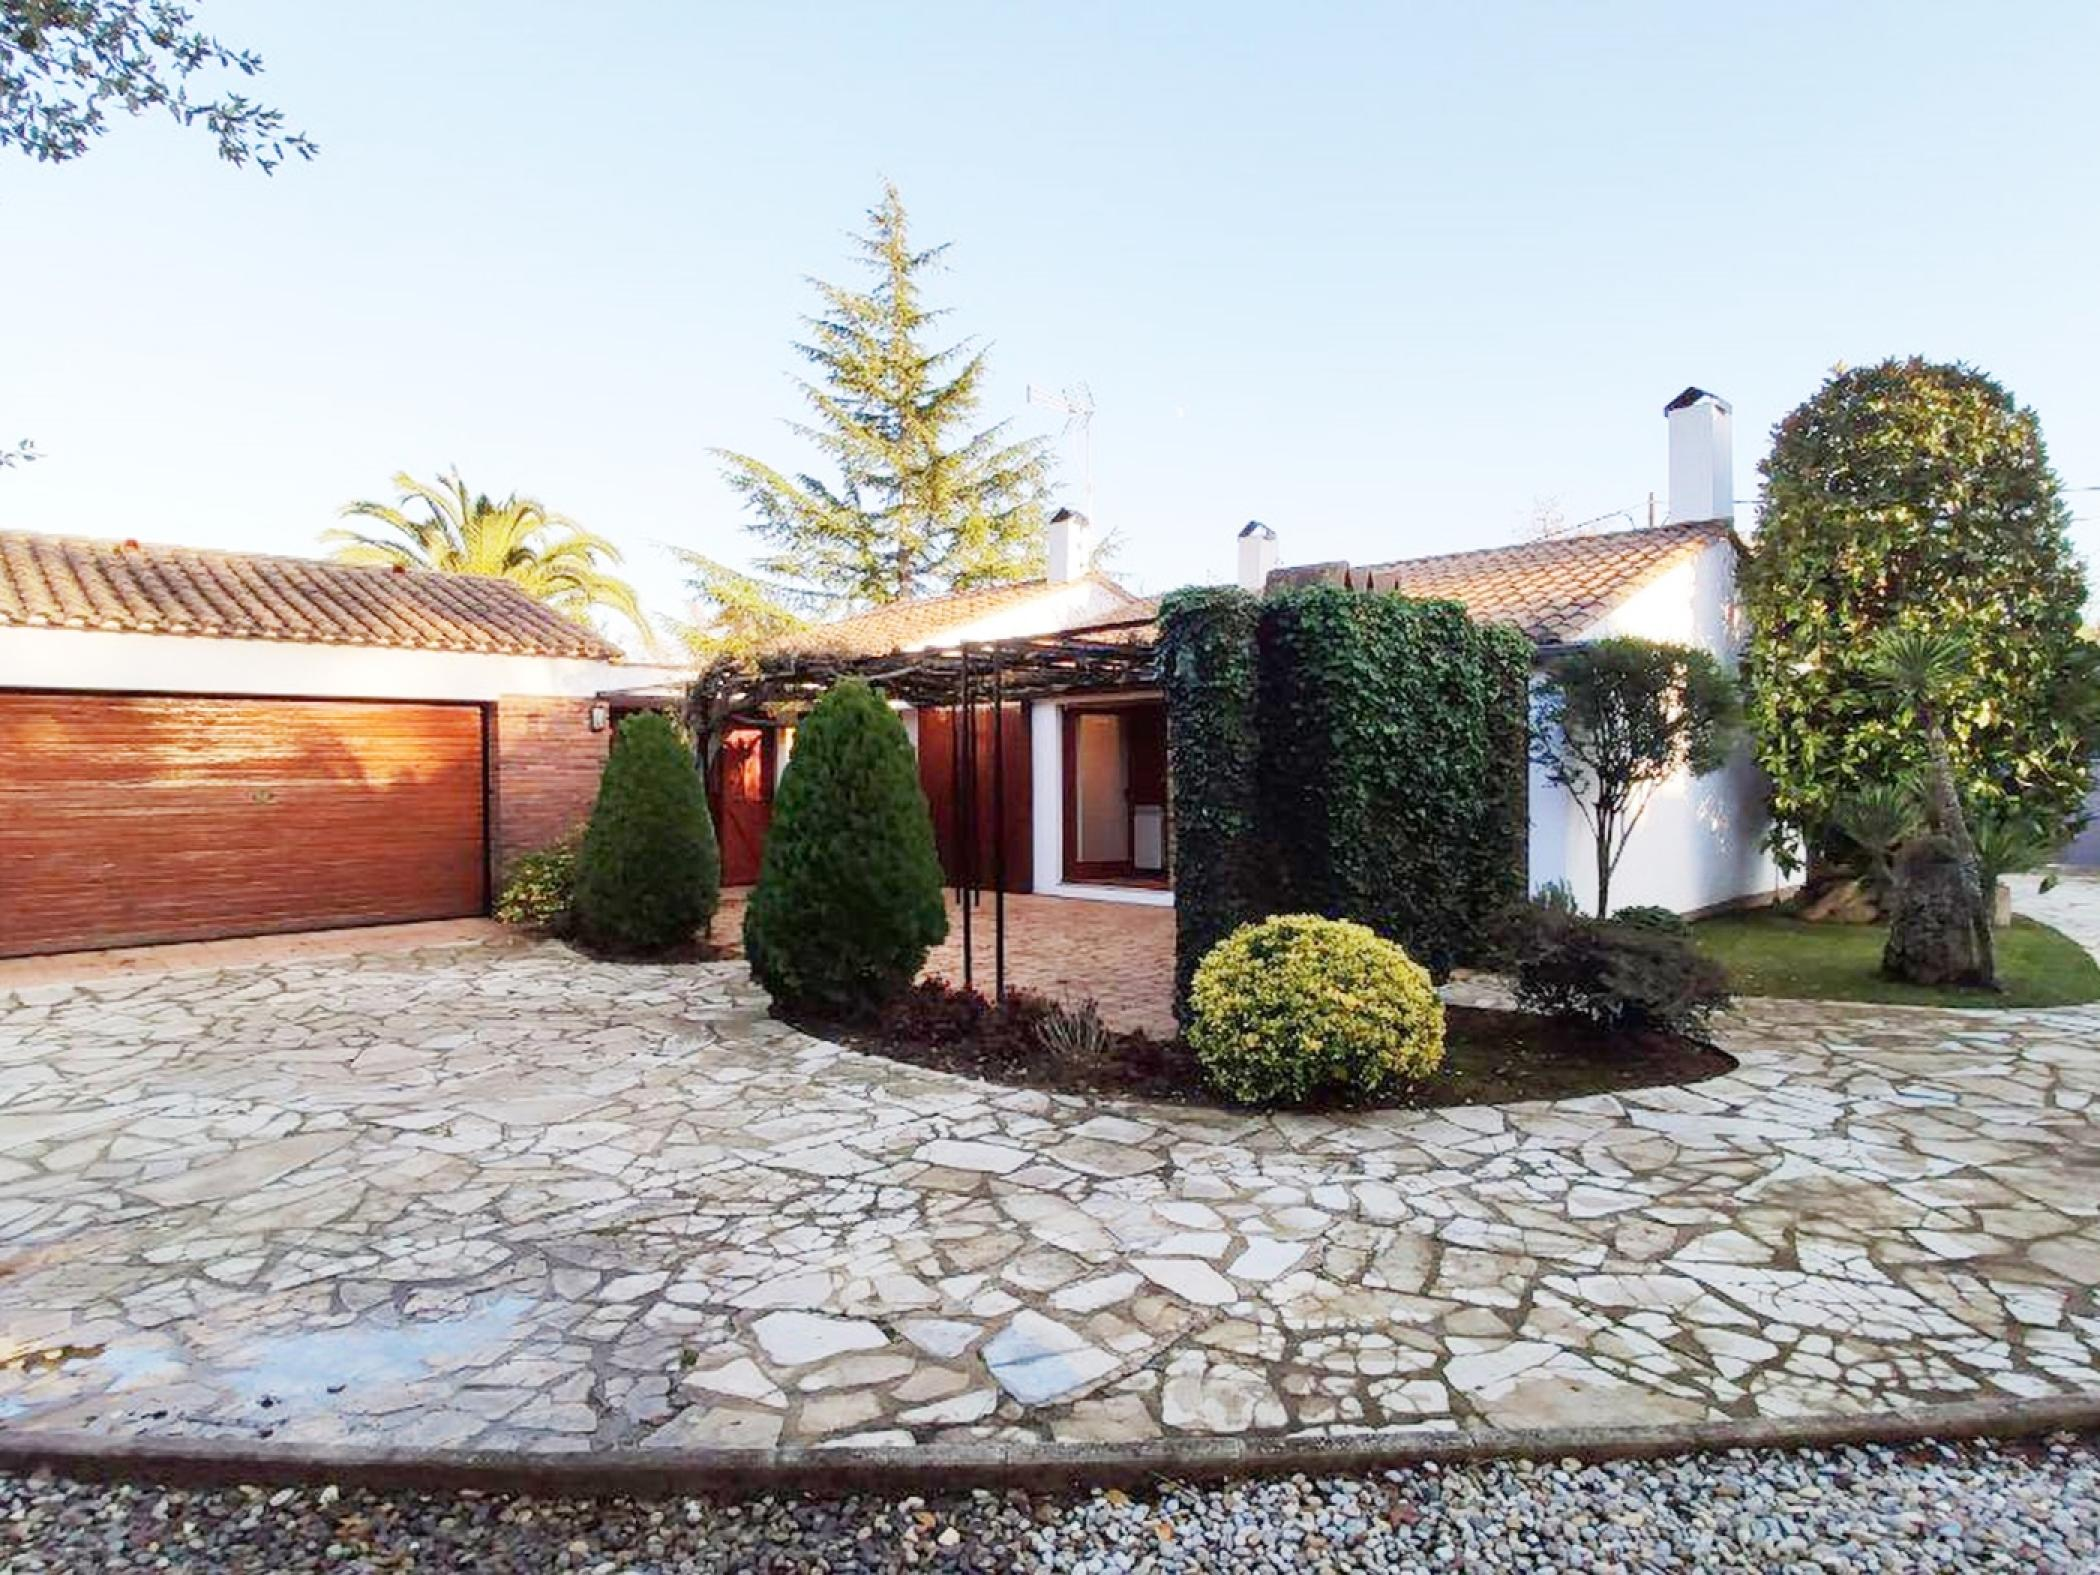 Rent Villa with Swimming pool in Caldes de Malavella - Villa a Caldes de Malavella Molins - 12